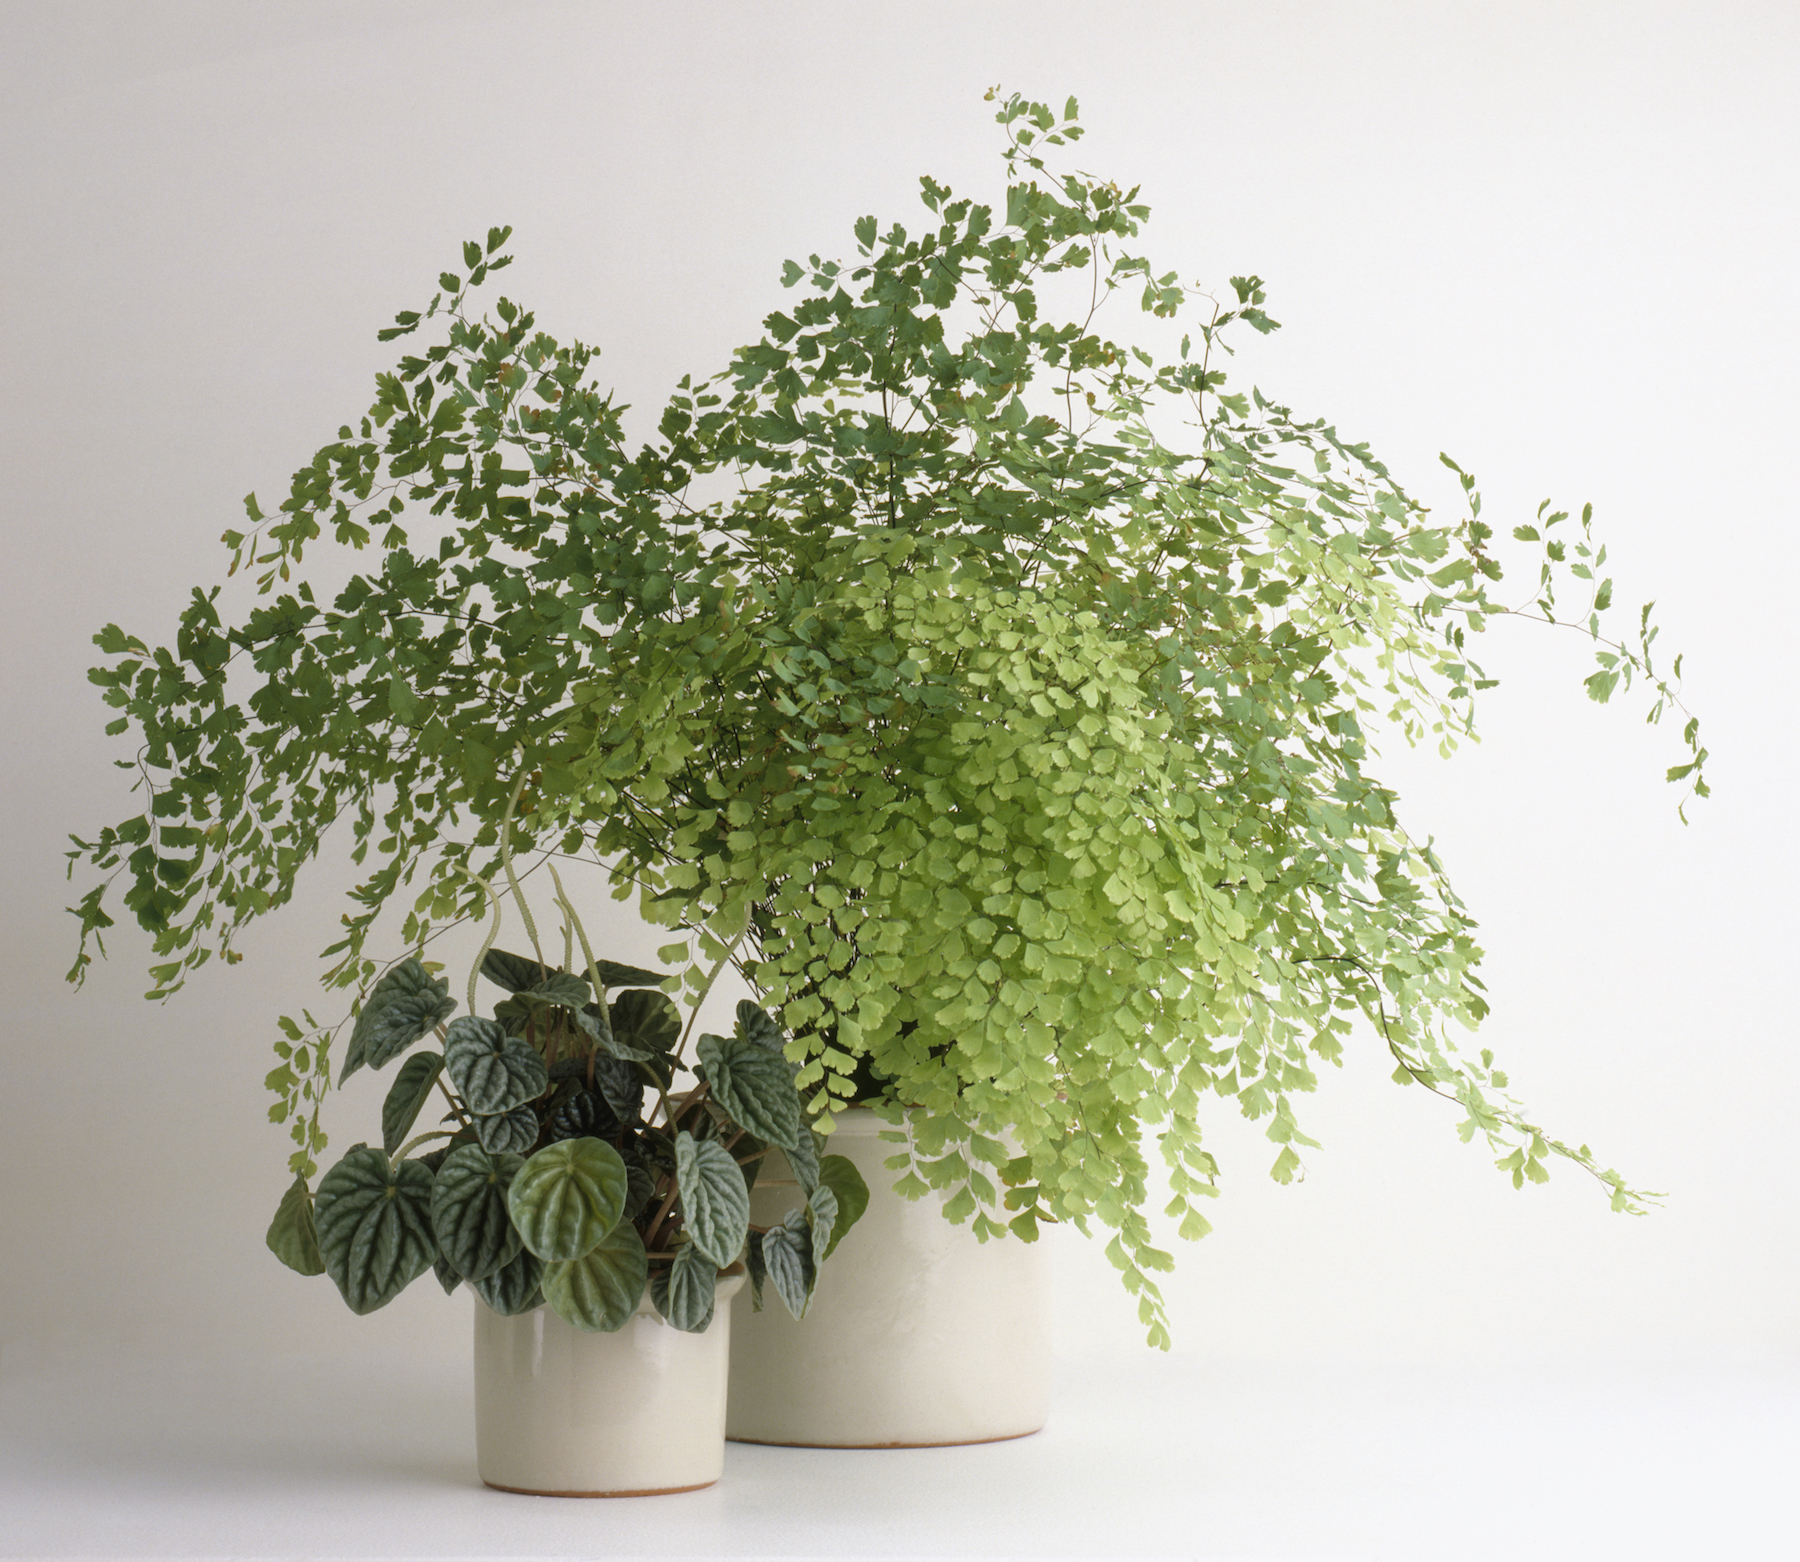 Plants That Don't Need Sunlight, Maidenhair Fern